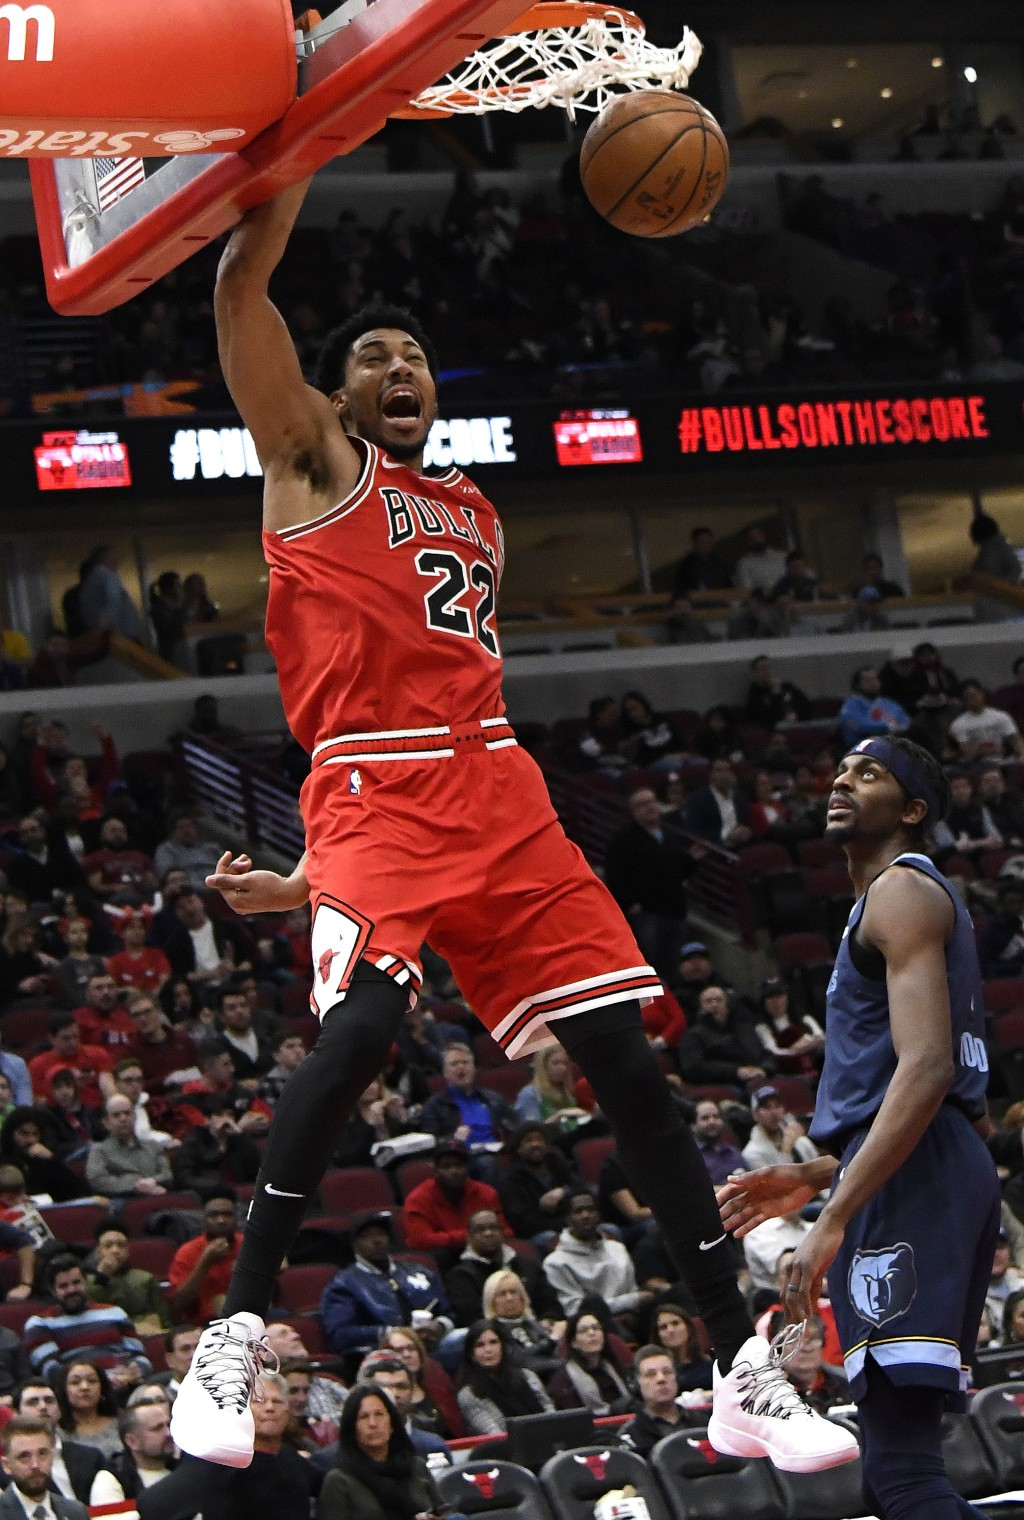 Chicago Bulls forward Otto Porter Jr. (22) dunks the ball as Memphis Grizzlies forward Justin Holiday (7) stands nearby during the second half of an N...